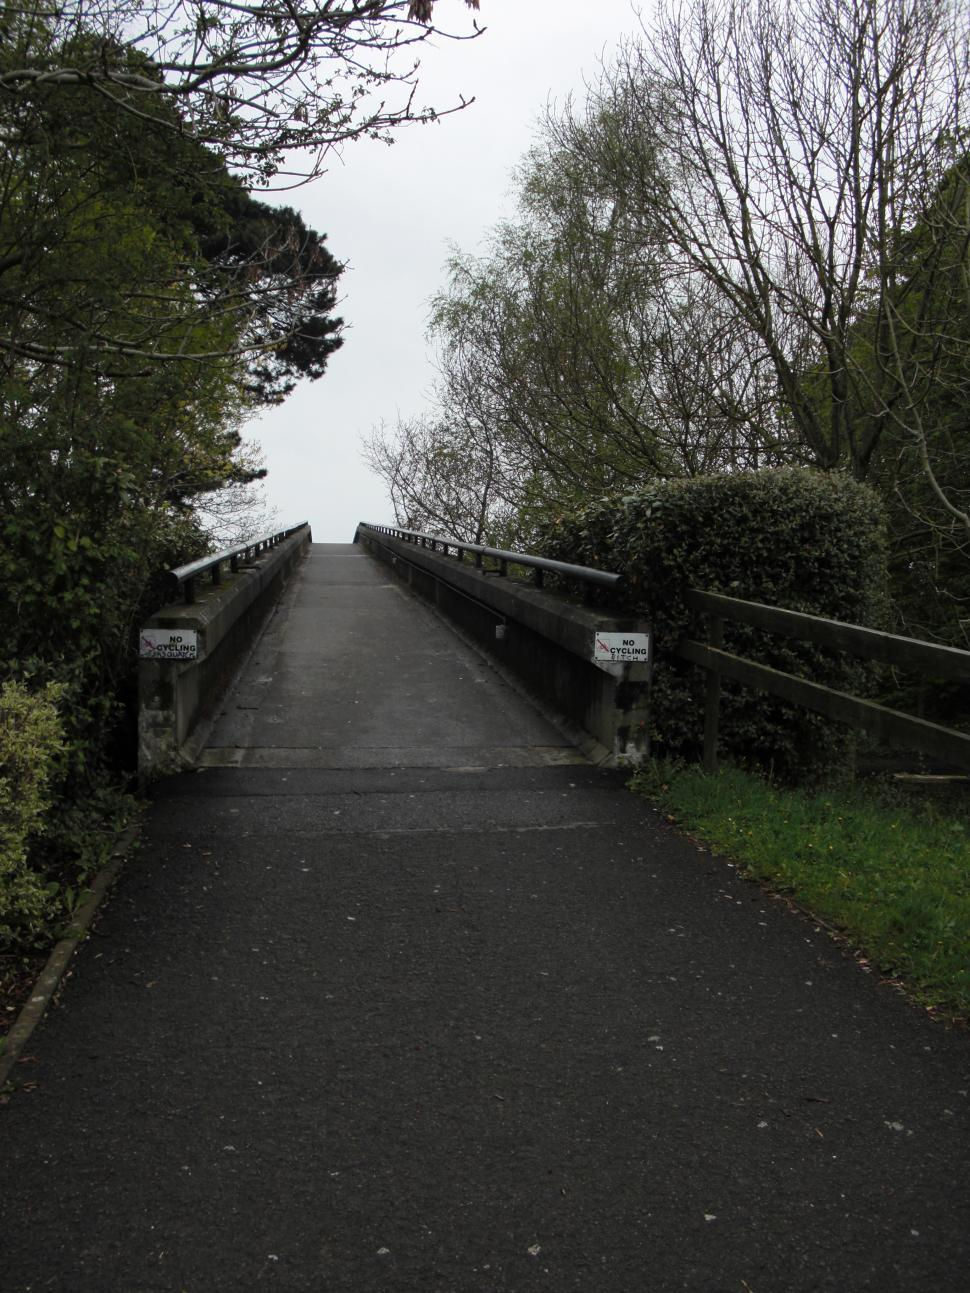 Download Free Stock HD Photo of Ireland - Maynooth - NUI Bridge Online